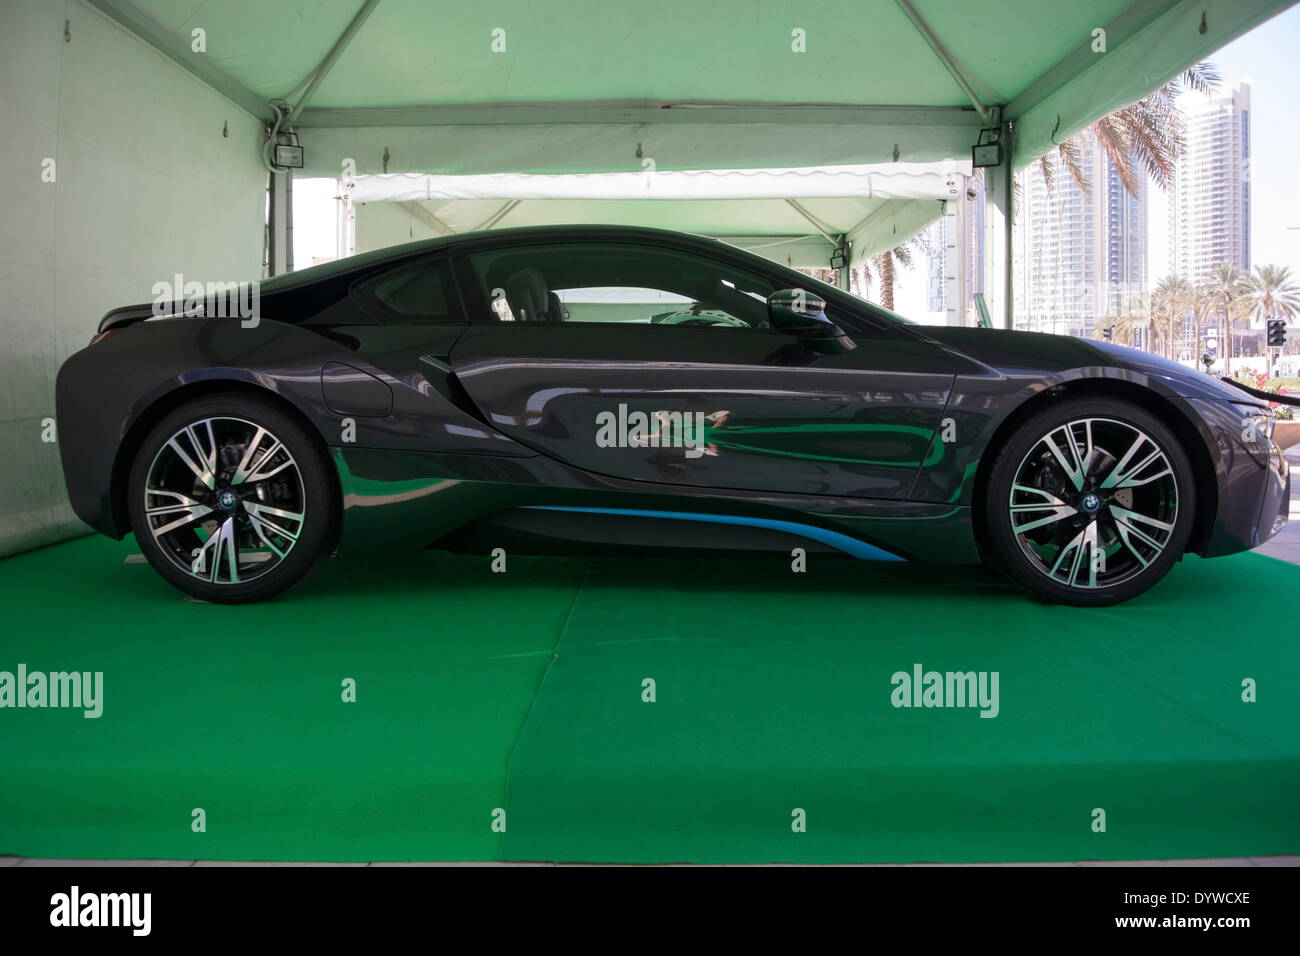 2014 Black BMW I8 Hybrid 2 Door Gullwing Sports Coupe